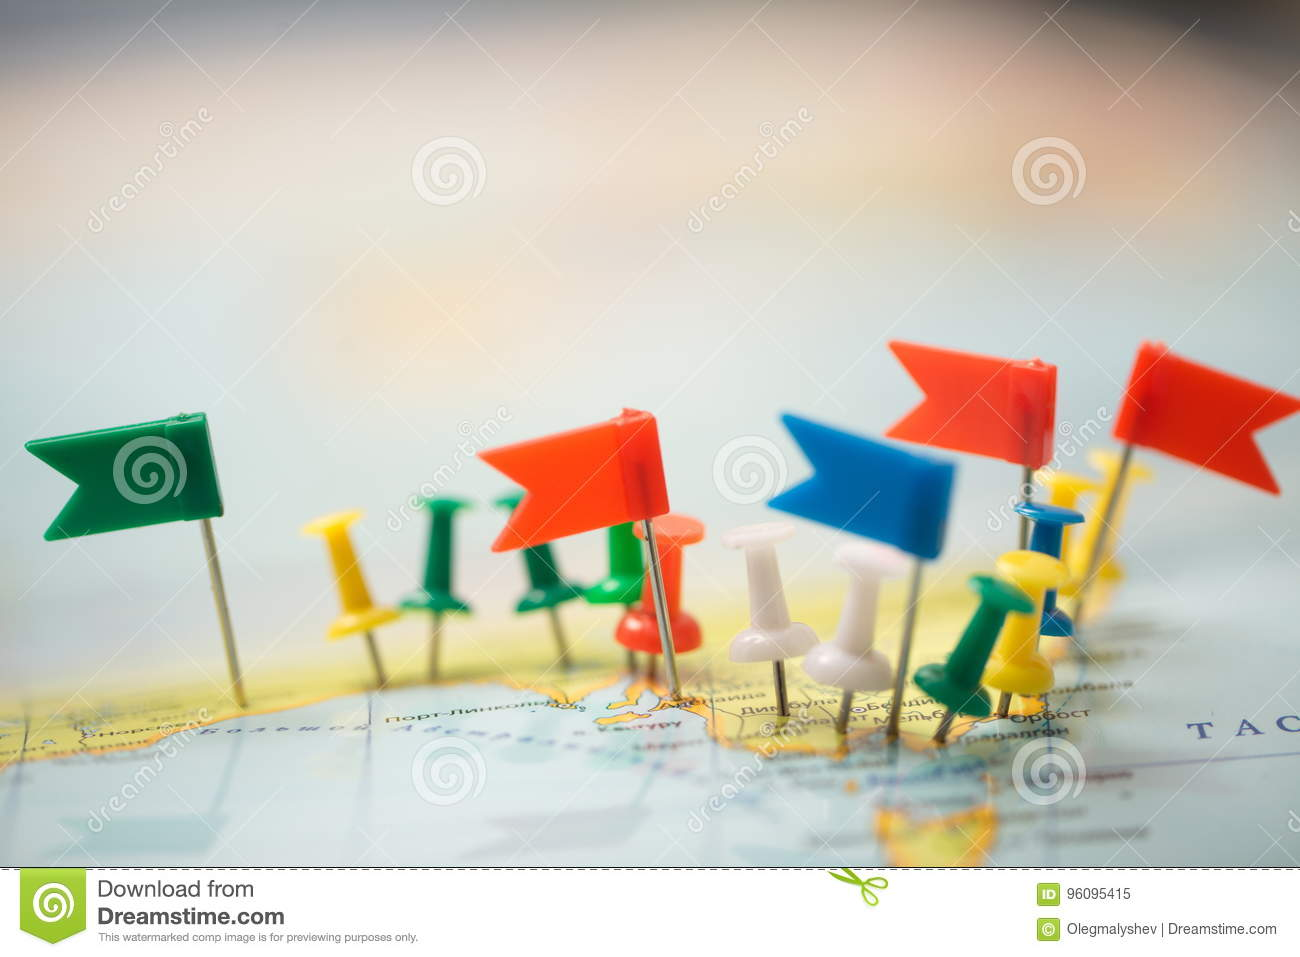 world map country flags marked pin city pinpoint stock